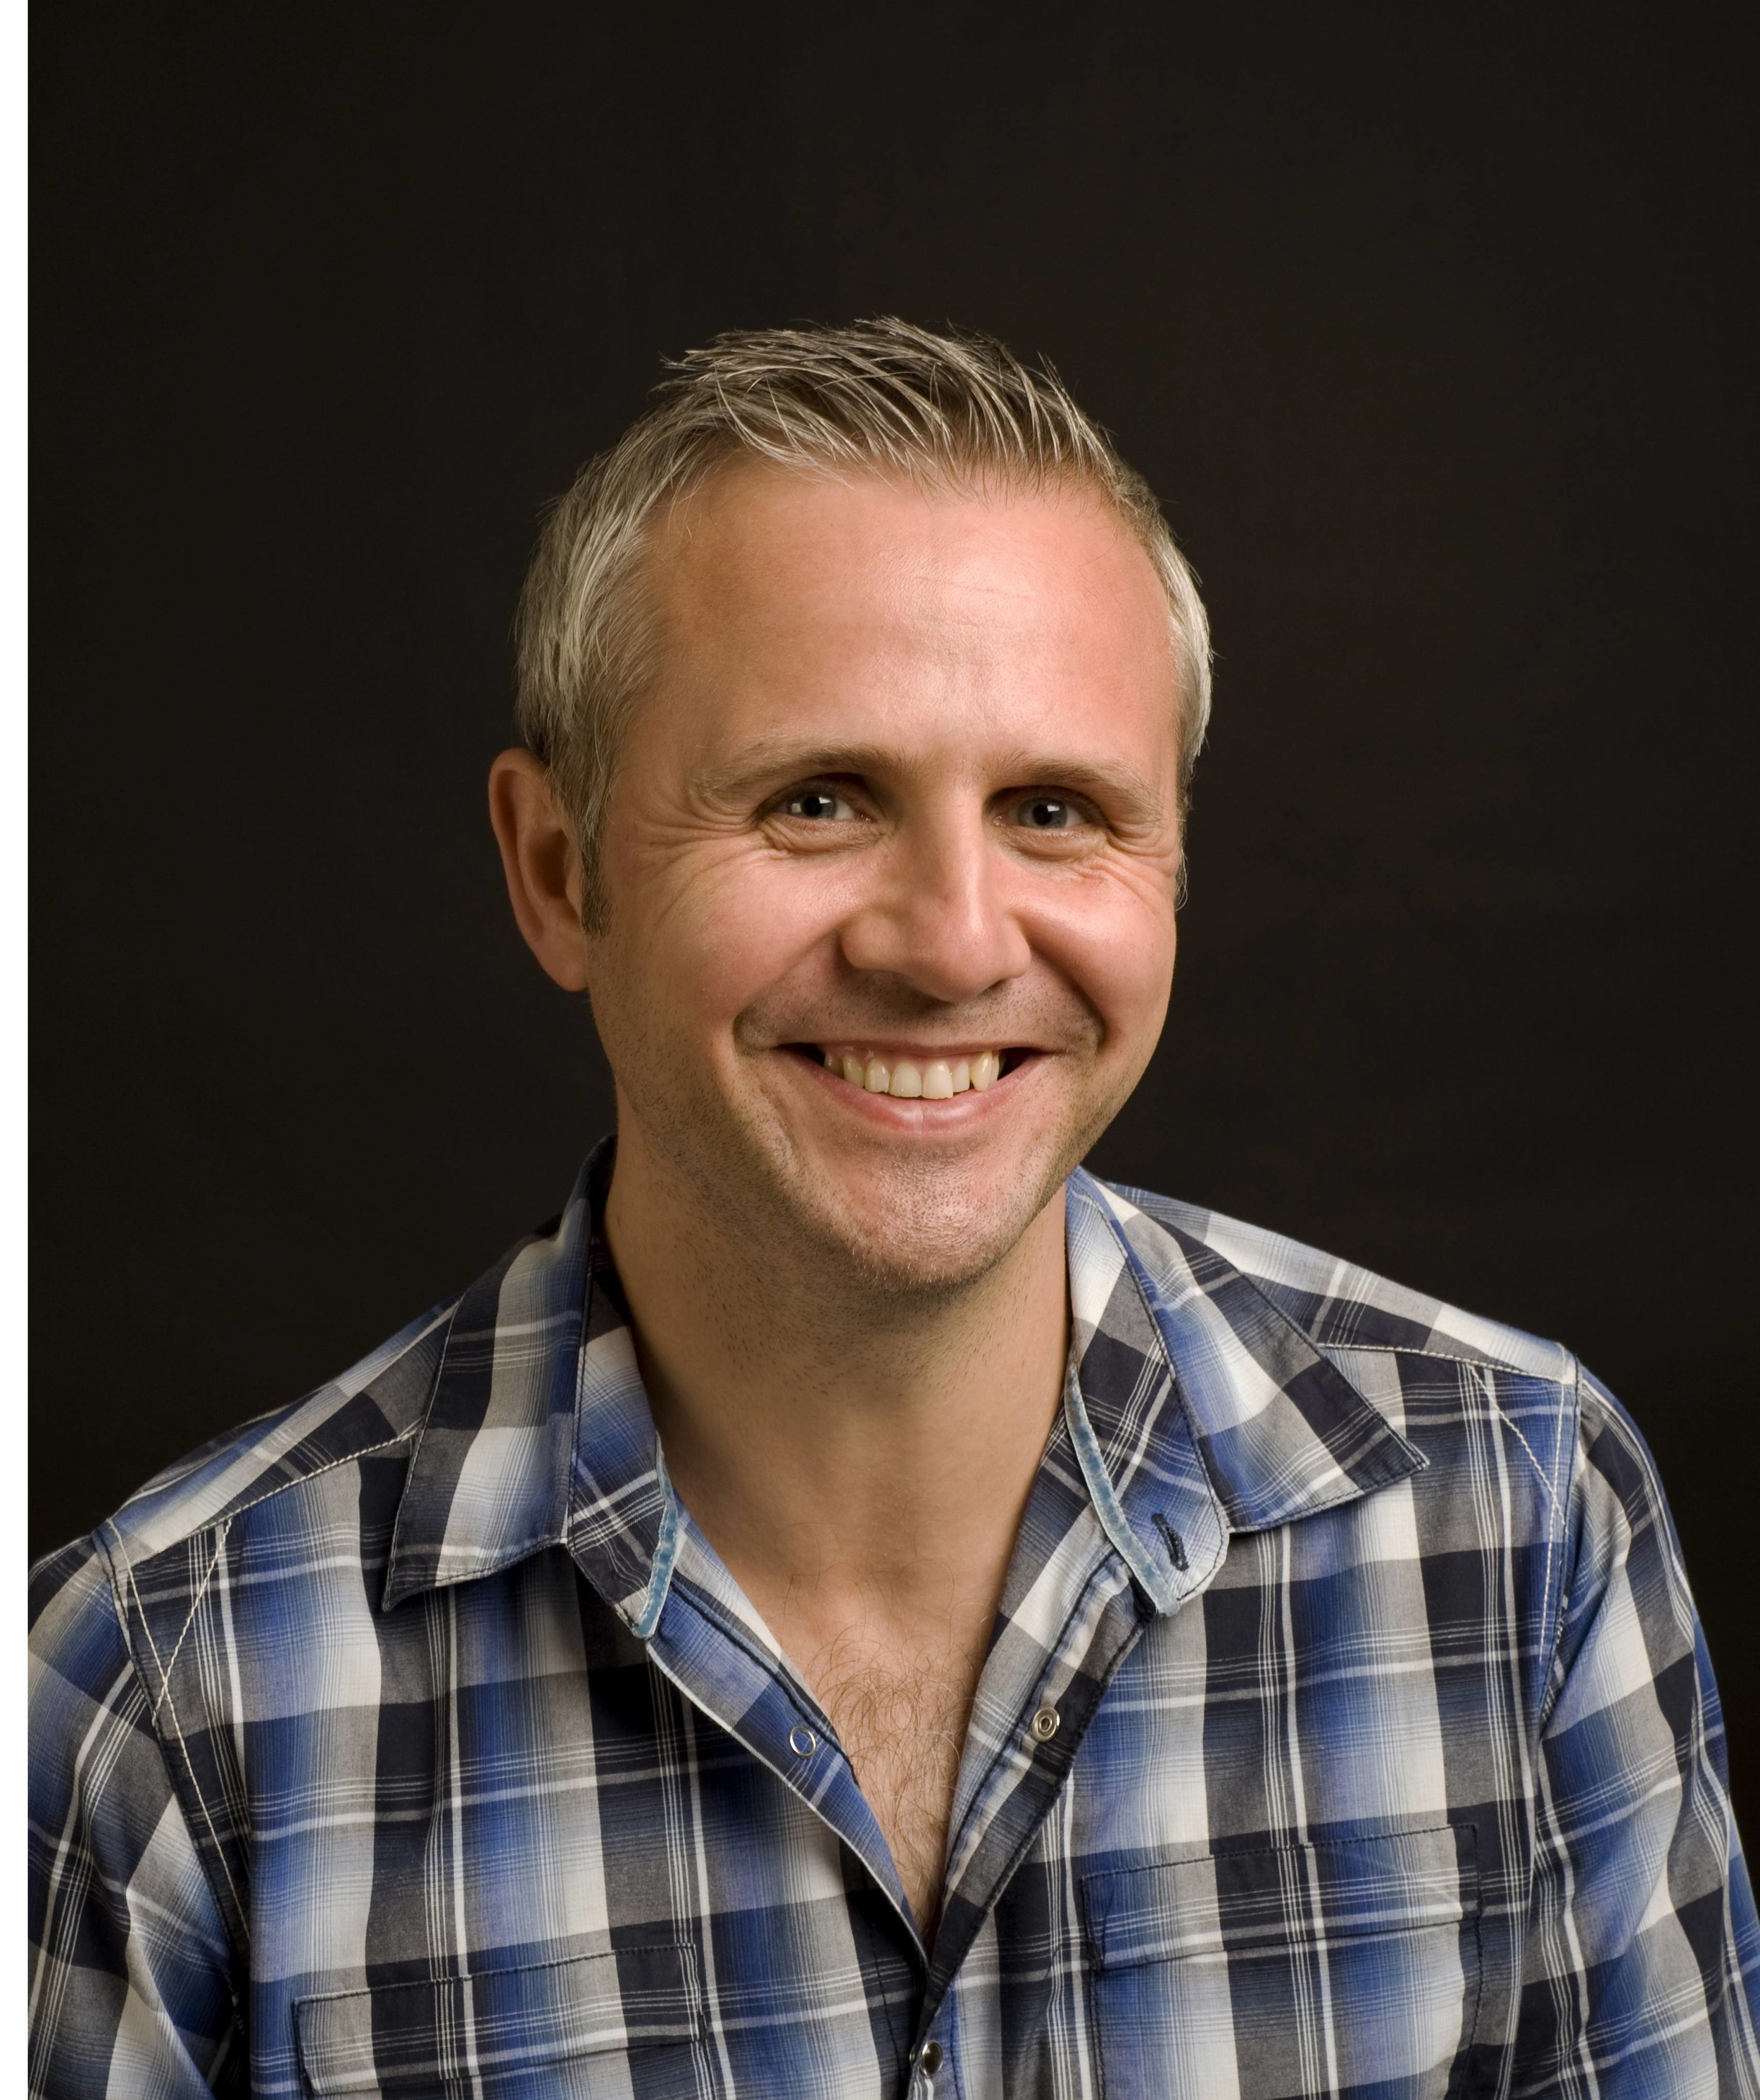 Dr David Hamilton - Using Science to Inspire - David Hamilton has a PhD in organic chemistry and spent 4 years in the pharmaceutical industry, developing drugs for cardiovascular disease and cancer. Inspired by the placebo effect, he left the industry to write books and educate people in how they can harness their mind and emotions to improve their health.He is now author of 9 books, all published by Hay House, including, 'How Your Mind Can Heal Your Body', 'I Heart Me' and the Amazon bestseller, 'The Five Side Effects of Kindness'.David writes a regular blog on his website and occasional blogs for the Huffington Post (US version). David is the 'Kindness Tsar' for Psychologies Magazine and writes the 'Kindness Project' in 'The Fix' section. He is also the 'Life Hacks' monthly columnist for Soul & Spirit Magazine and in 2016, he was voted 'Best writer' by readers of Kindred Spirit Magazine.He appears regularly in the media and was recently featured on Channel 4's live show, 'Sunday Brunch', in the UK and 'CBS Sunday Morning' in the USA.David is an advocate for kindness and is working passionately to help inspire a kinder world.TWITTER  FACEBOOK INSTAGRAM